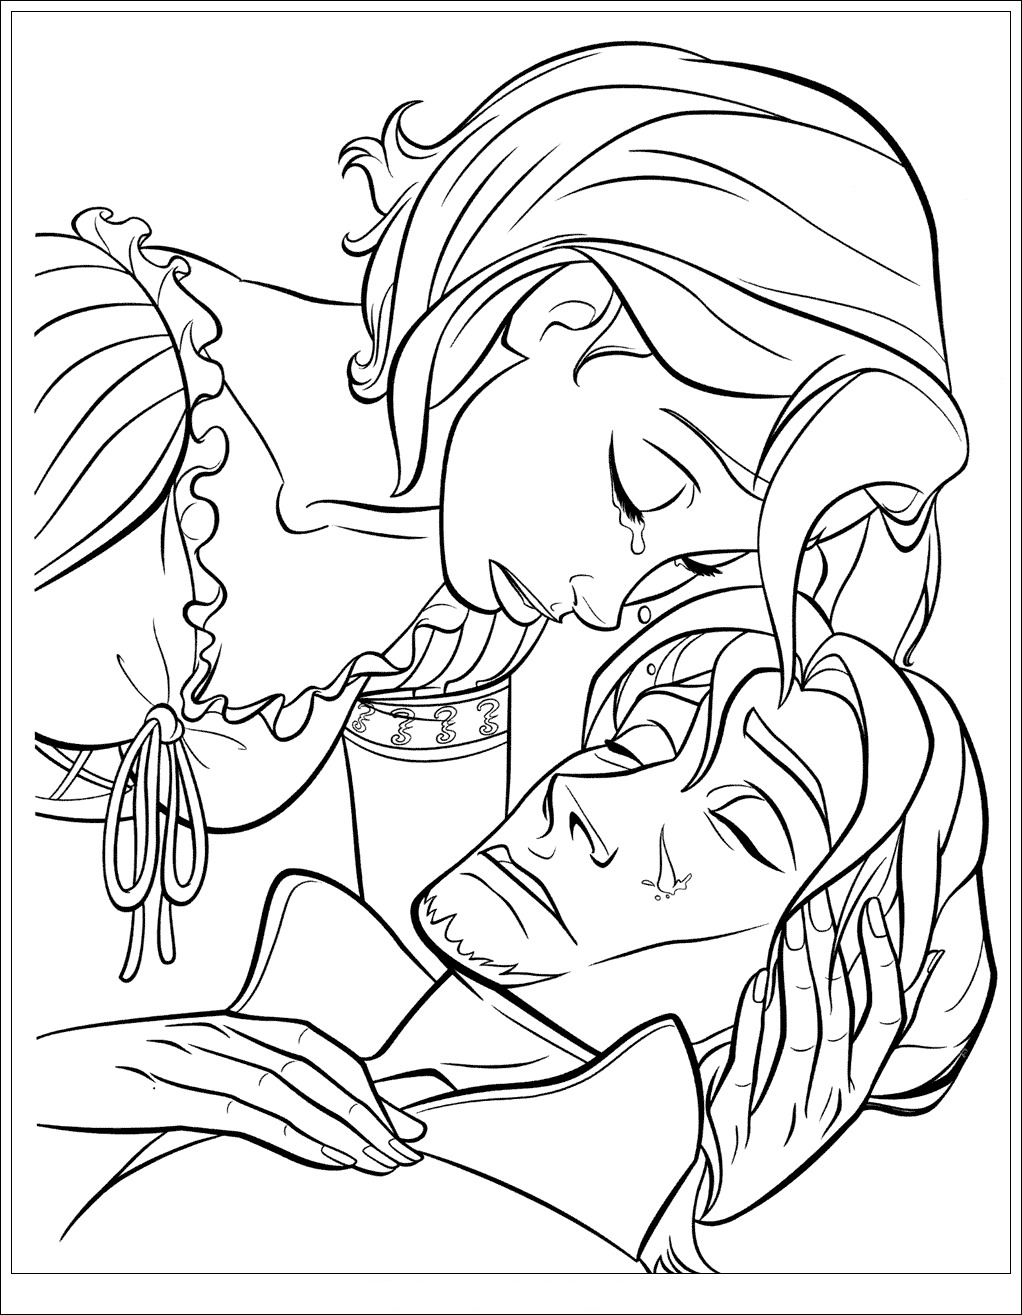 Free Tangled coloring page to print and color : Rapunzel crying, thinking Flynn Rider is dead